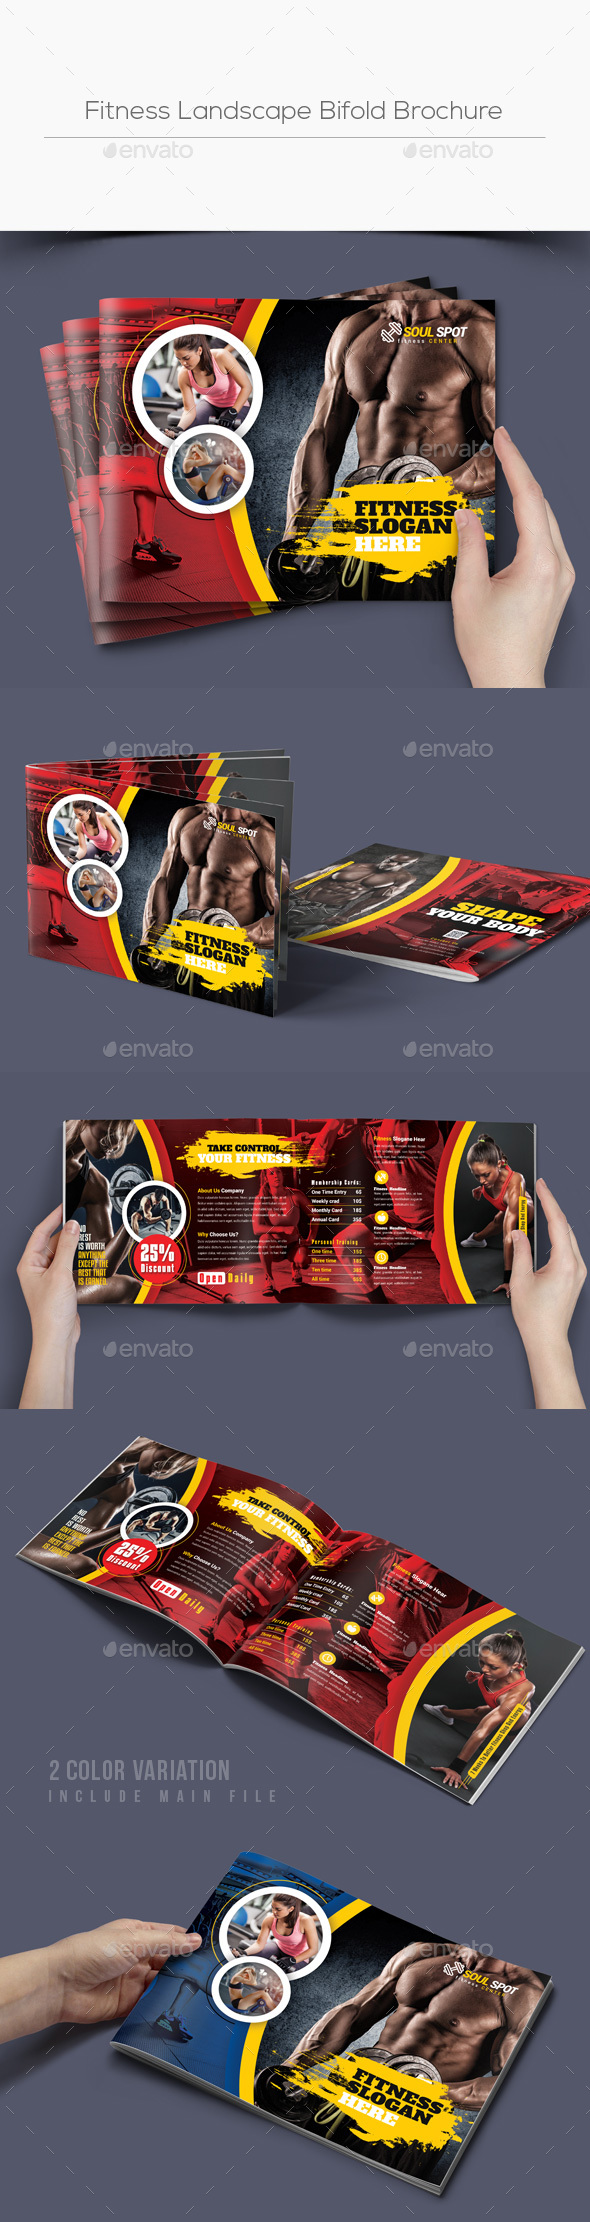 Fitness Landscape Bifold Brochure - Corporate Brochures